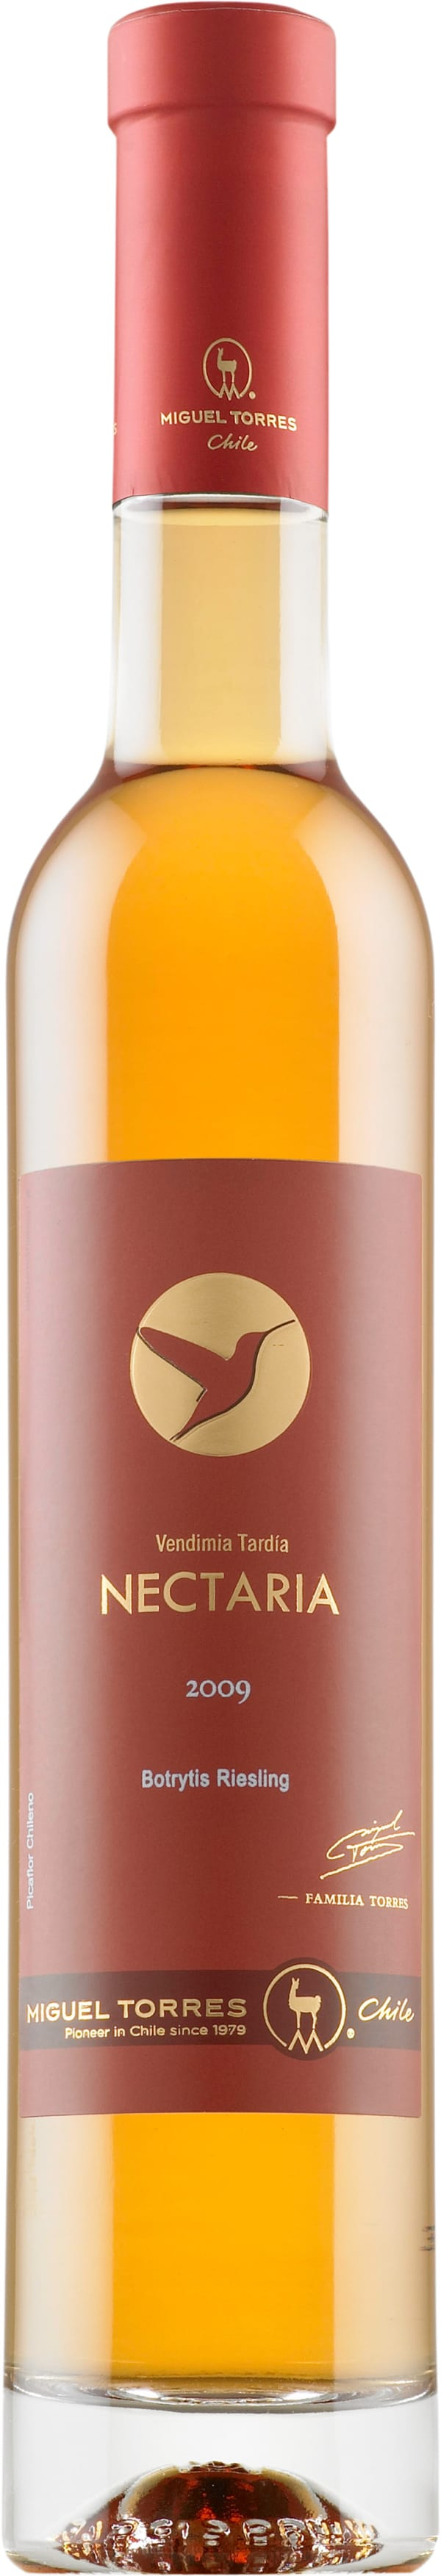 Torres Nectaria Riesling 2010